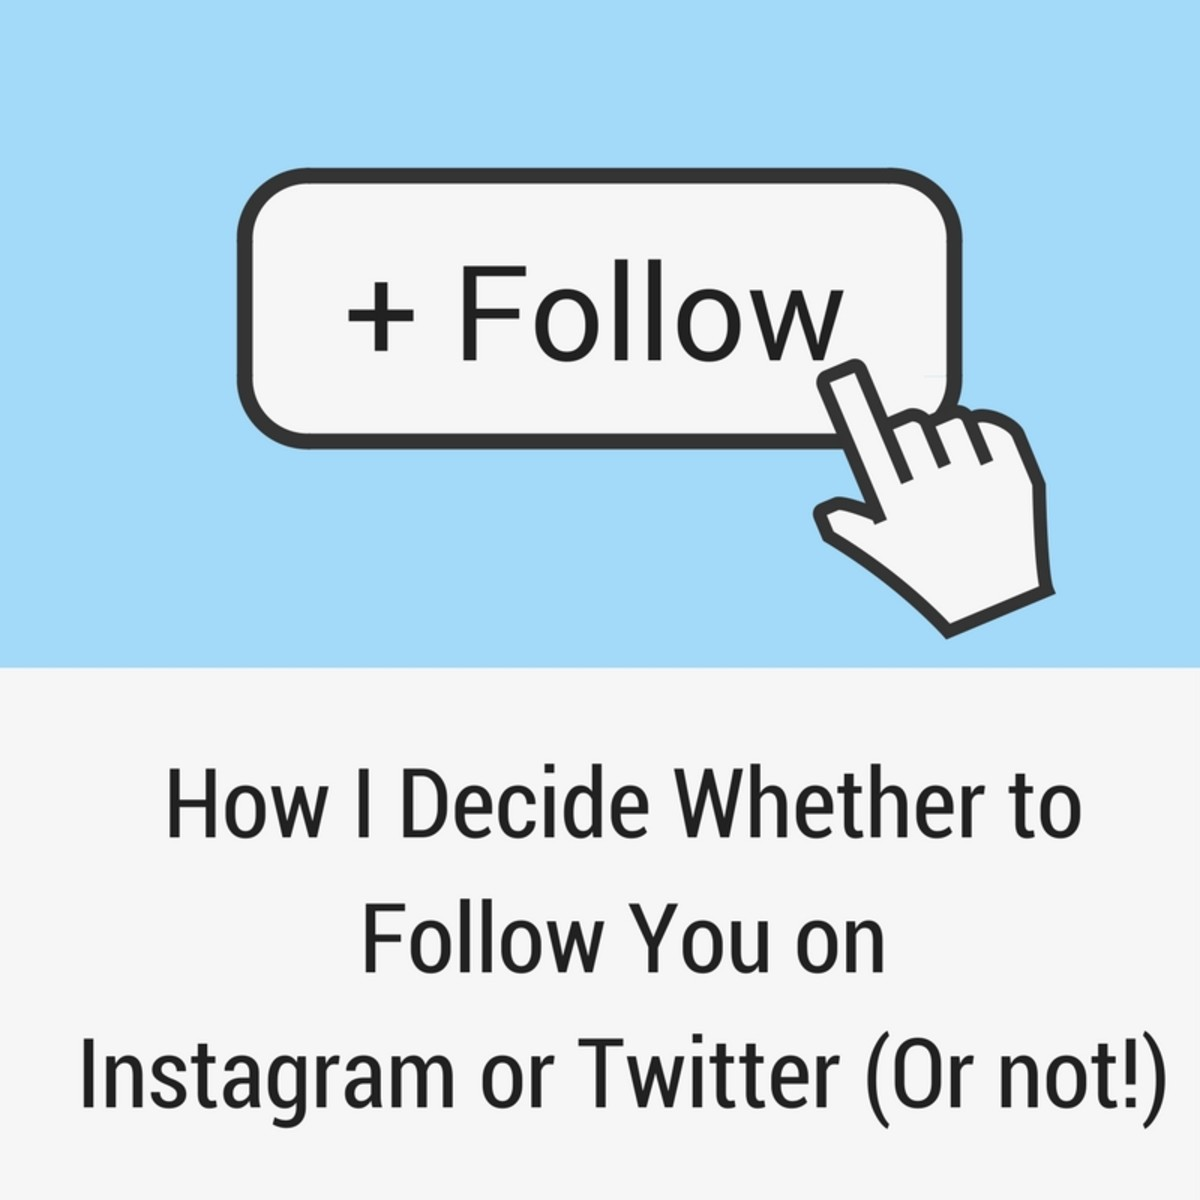 How I Decide Whether to Follow You on Instagram or Twitter